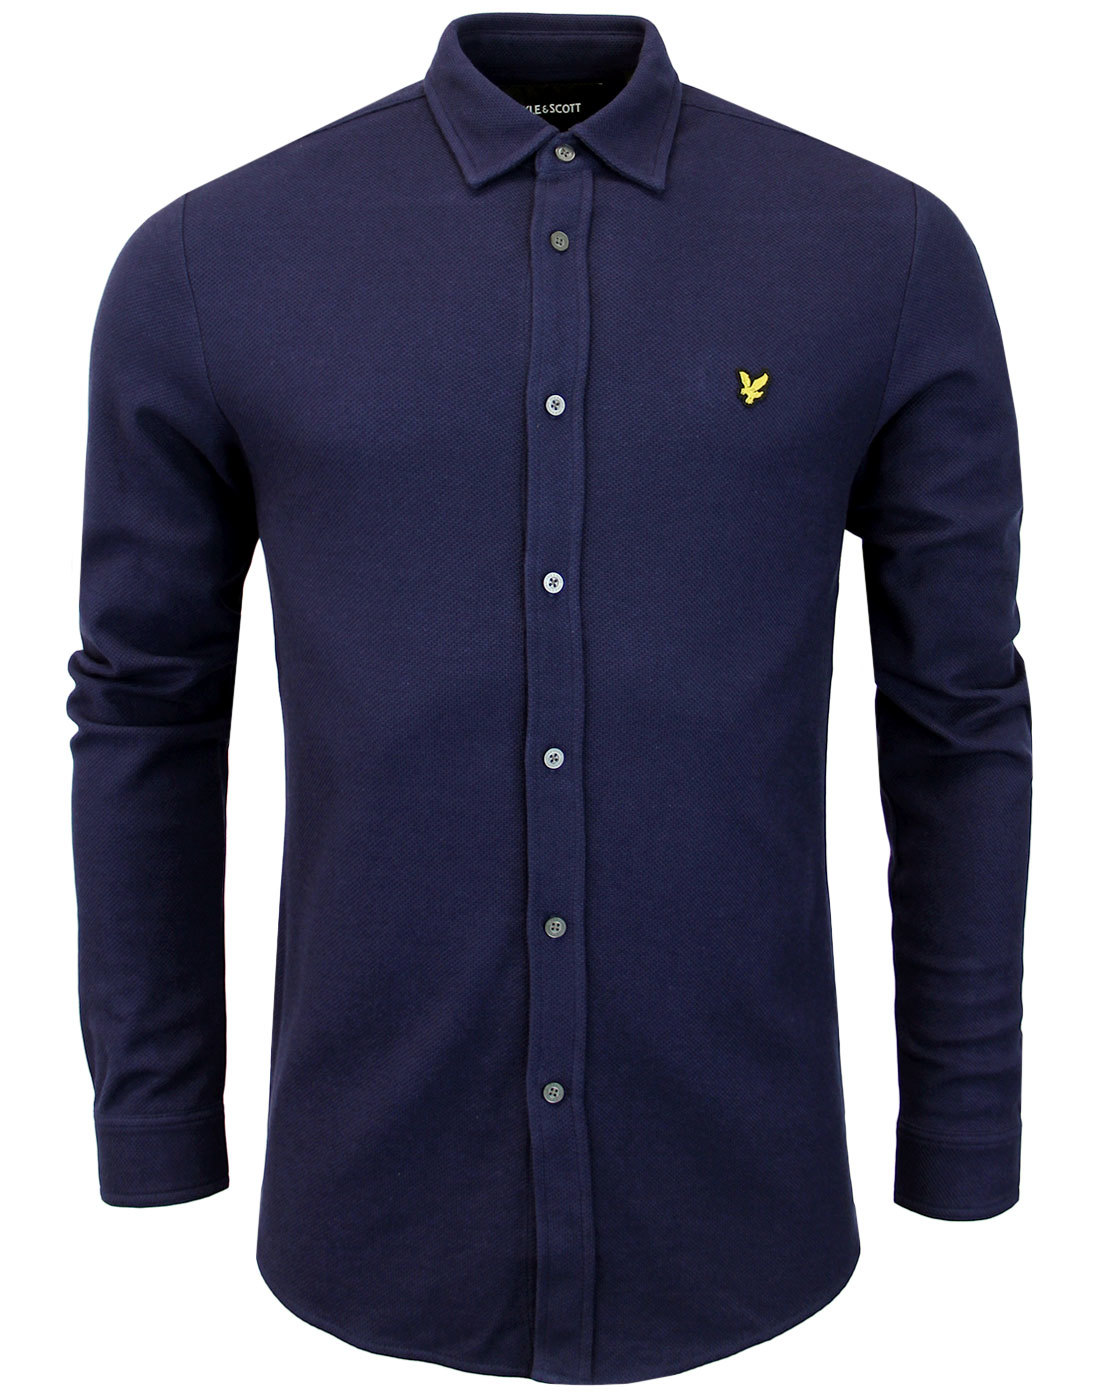 LYLE & SCOTT Men's Mod Honeycomb Jersey Shirt (N)